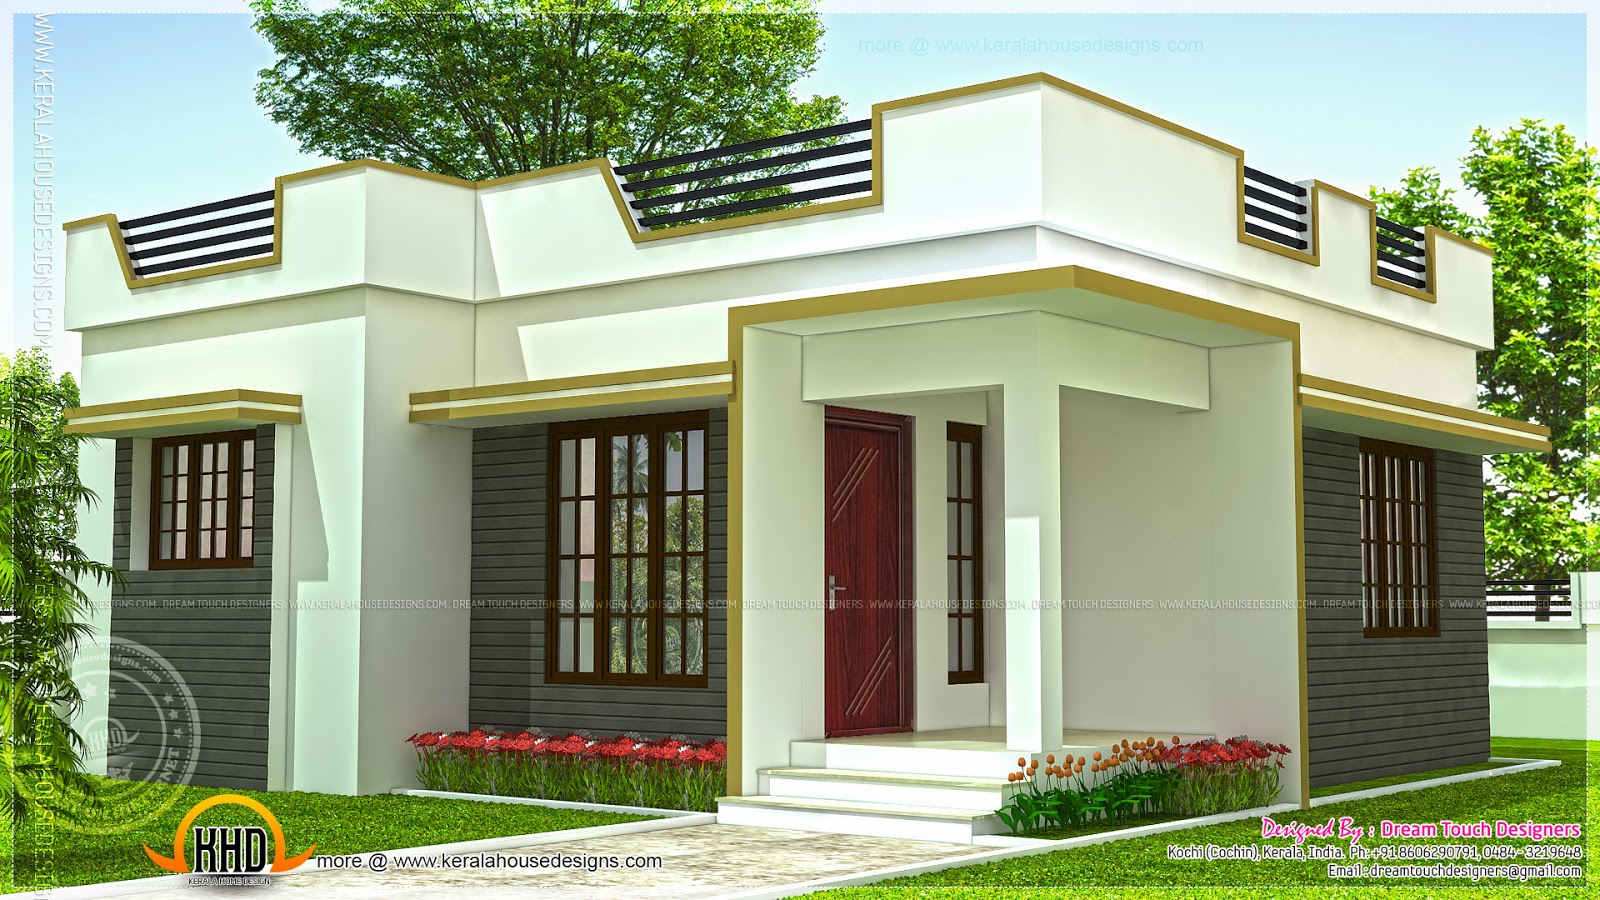 Kerala small house plans joy studio design gallery for Housing plans kerala